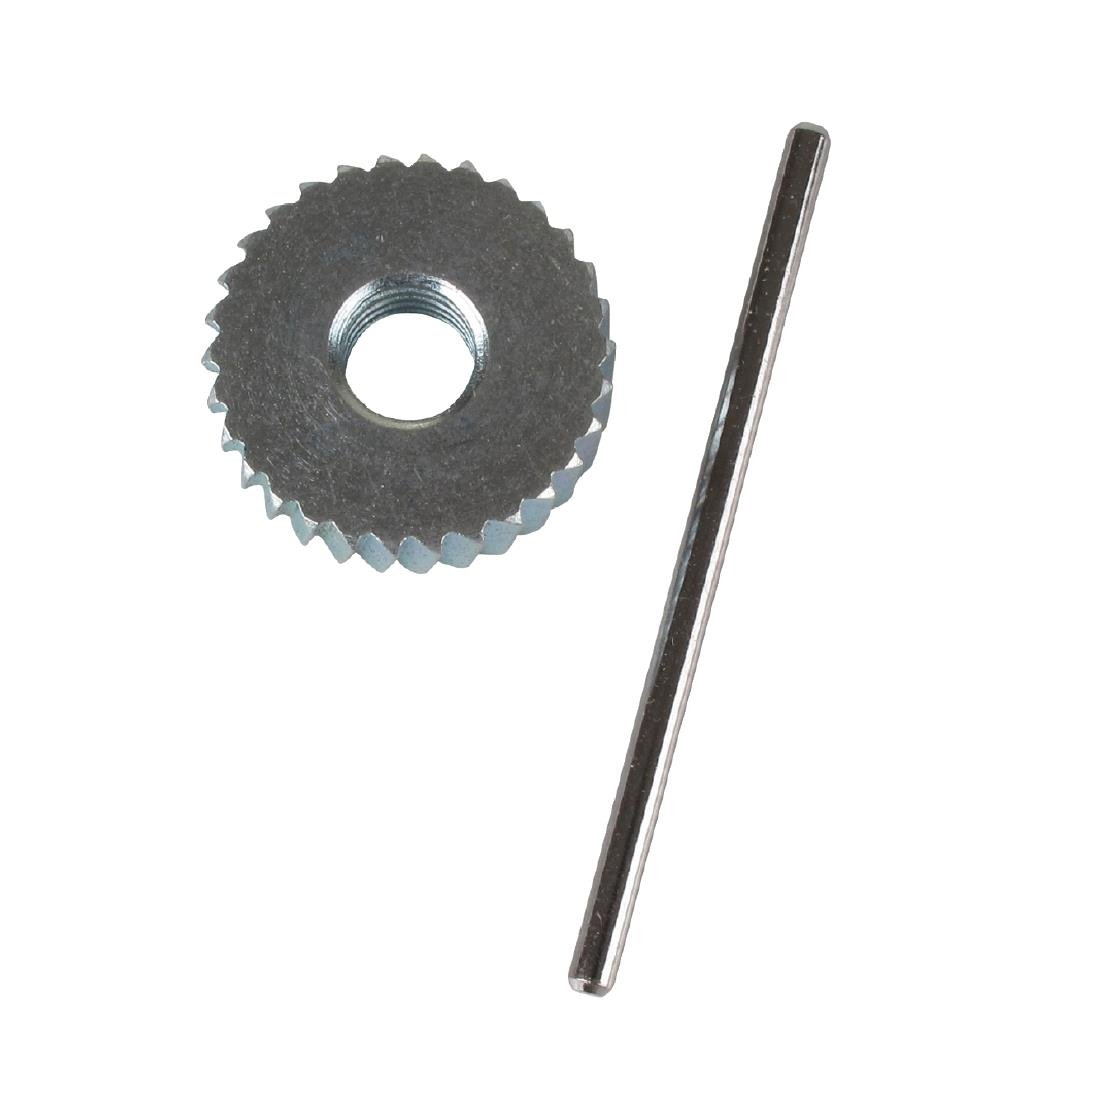 Replacement Cog for CE038 CE039 Can Opener